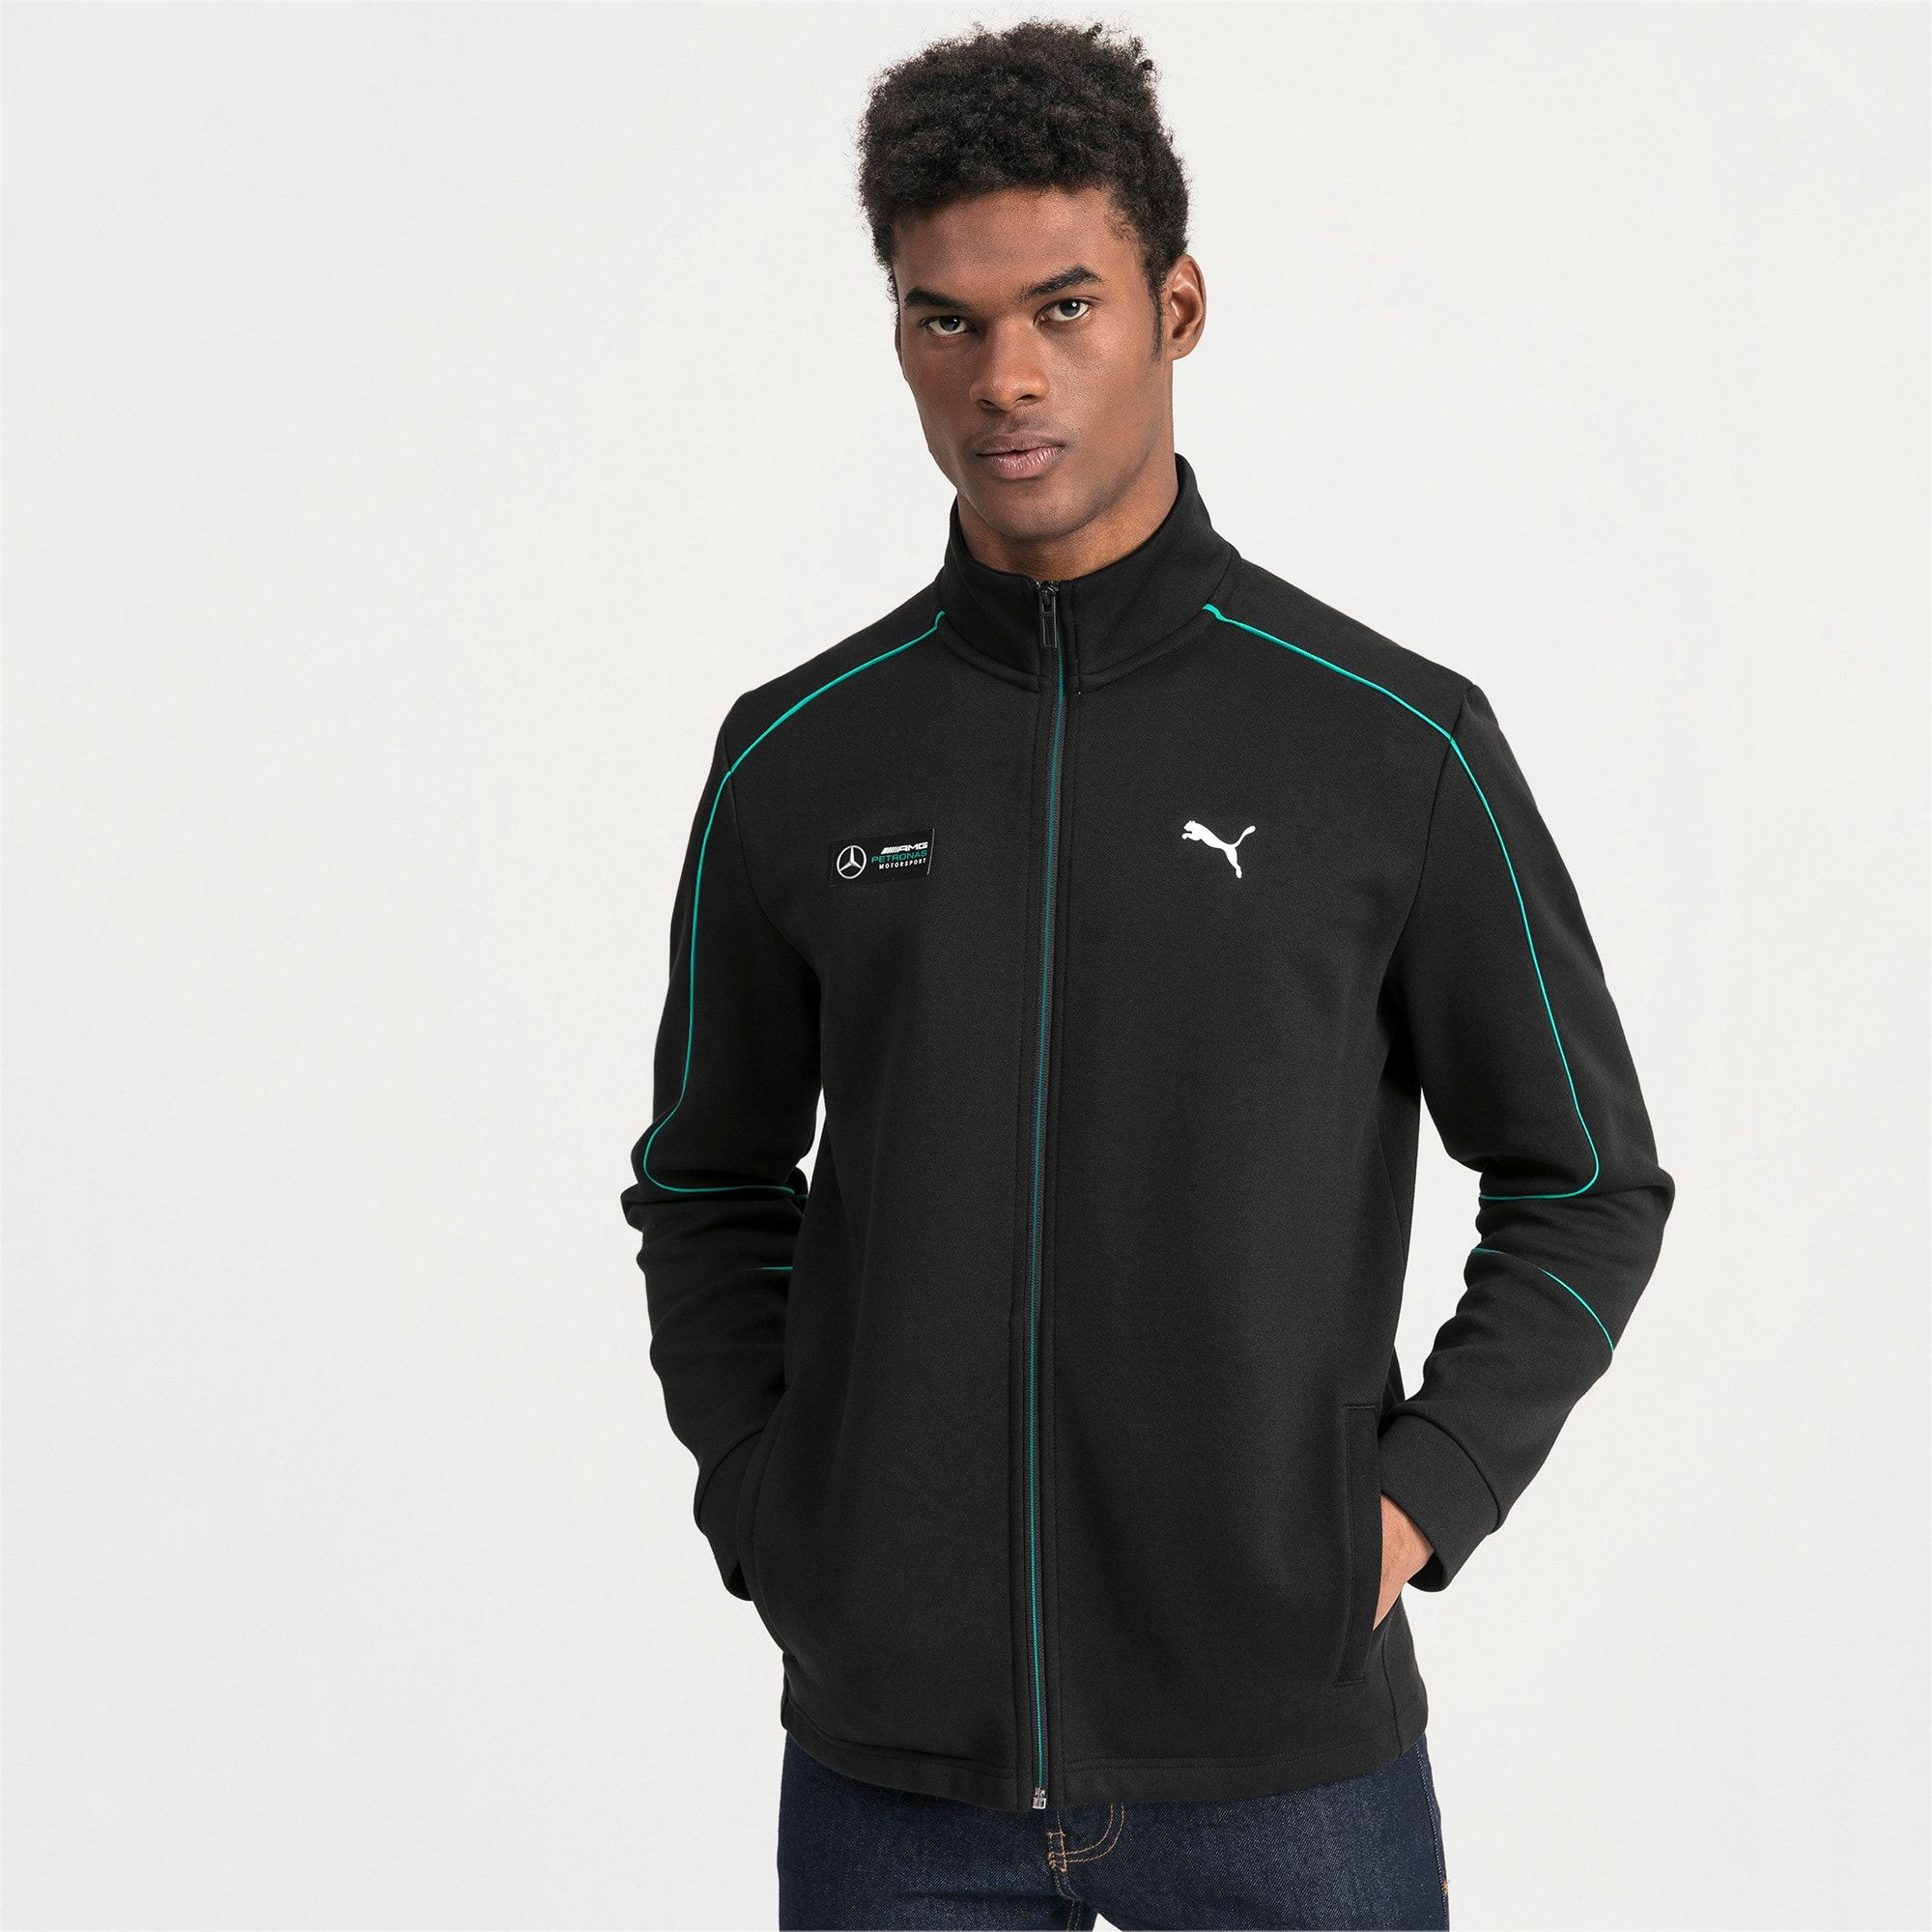 Mercedes AMG Petronas Men's Sweat Jacket | Puma Black | PUMA Mercedes AMG Petronas | PUMA United Kingdom #mercedesamg